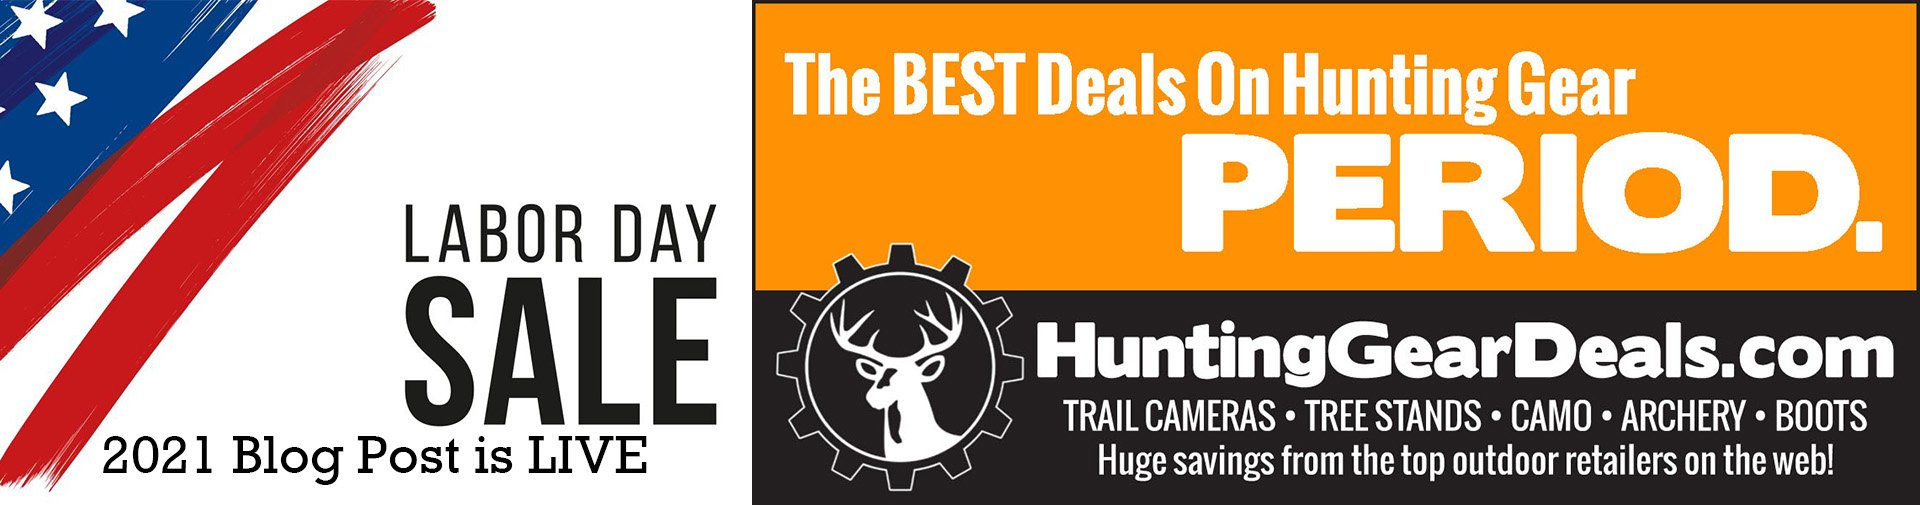 best labor day hunting deals